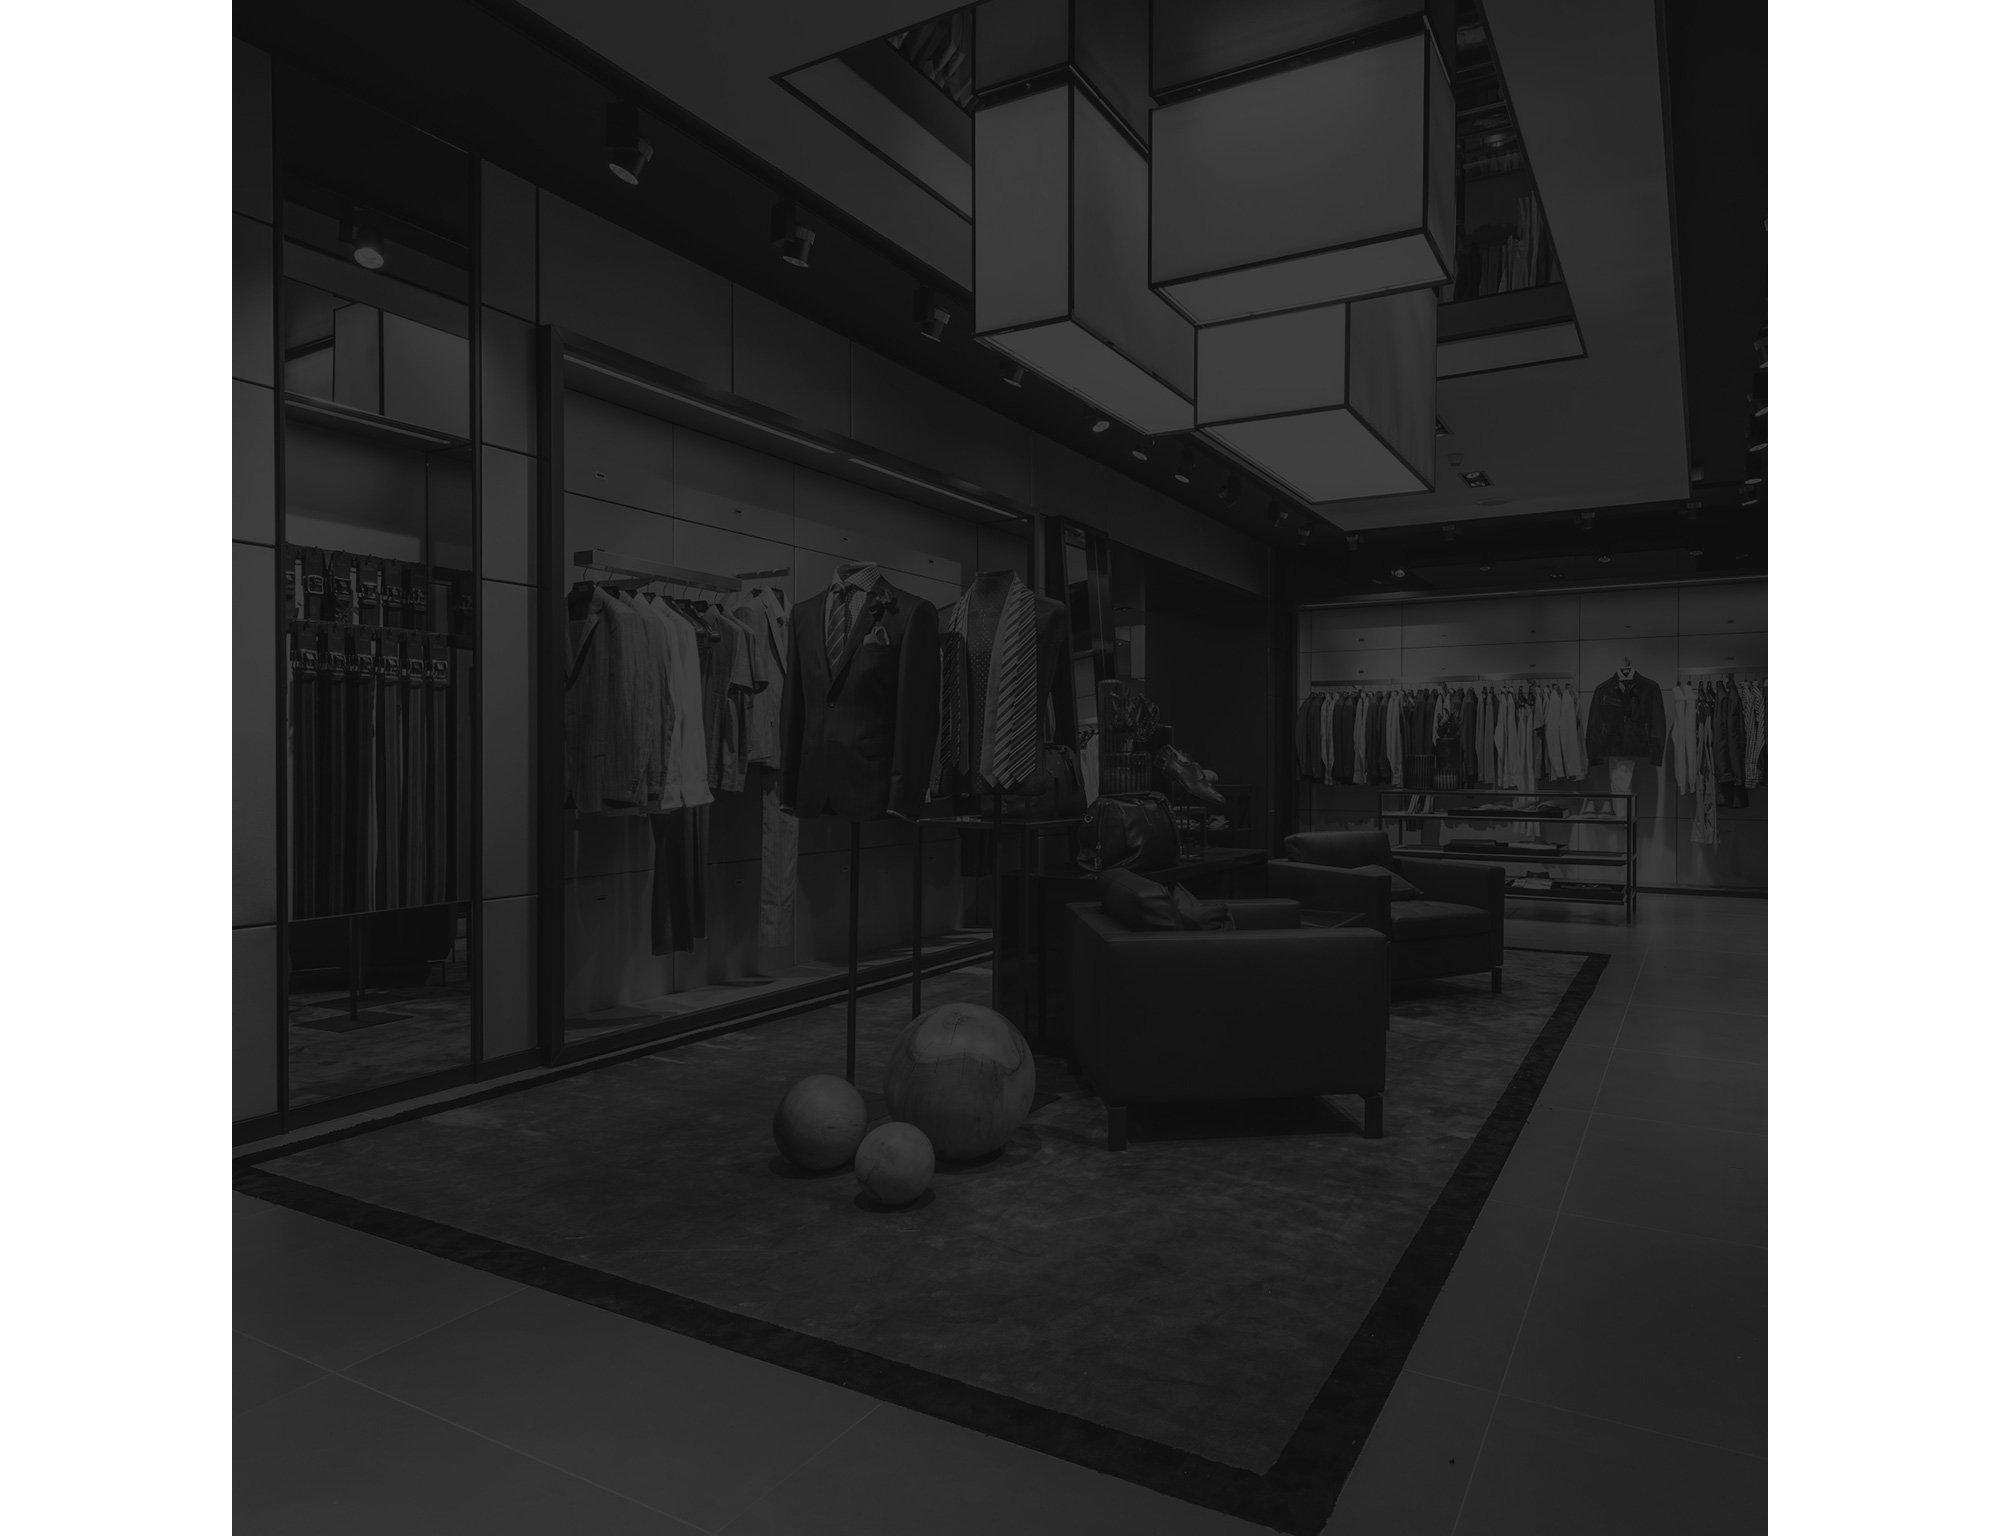 HUGO BOSS Store interior